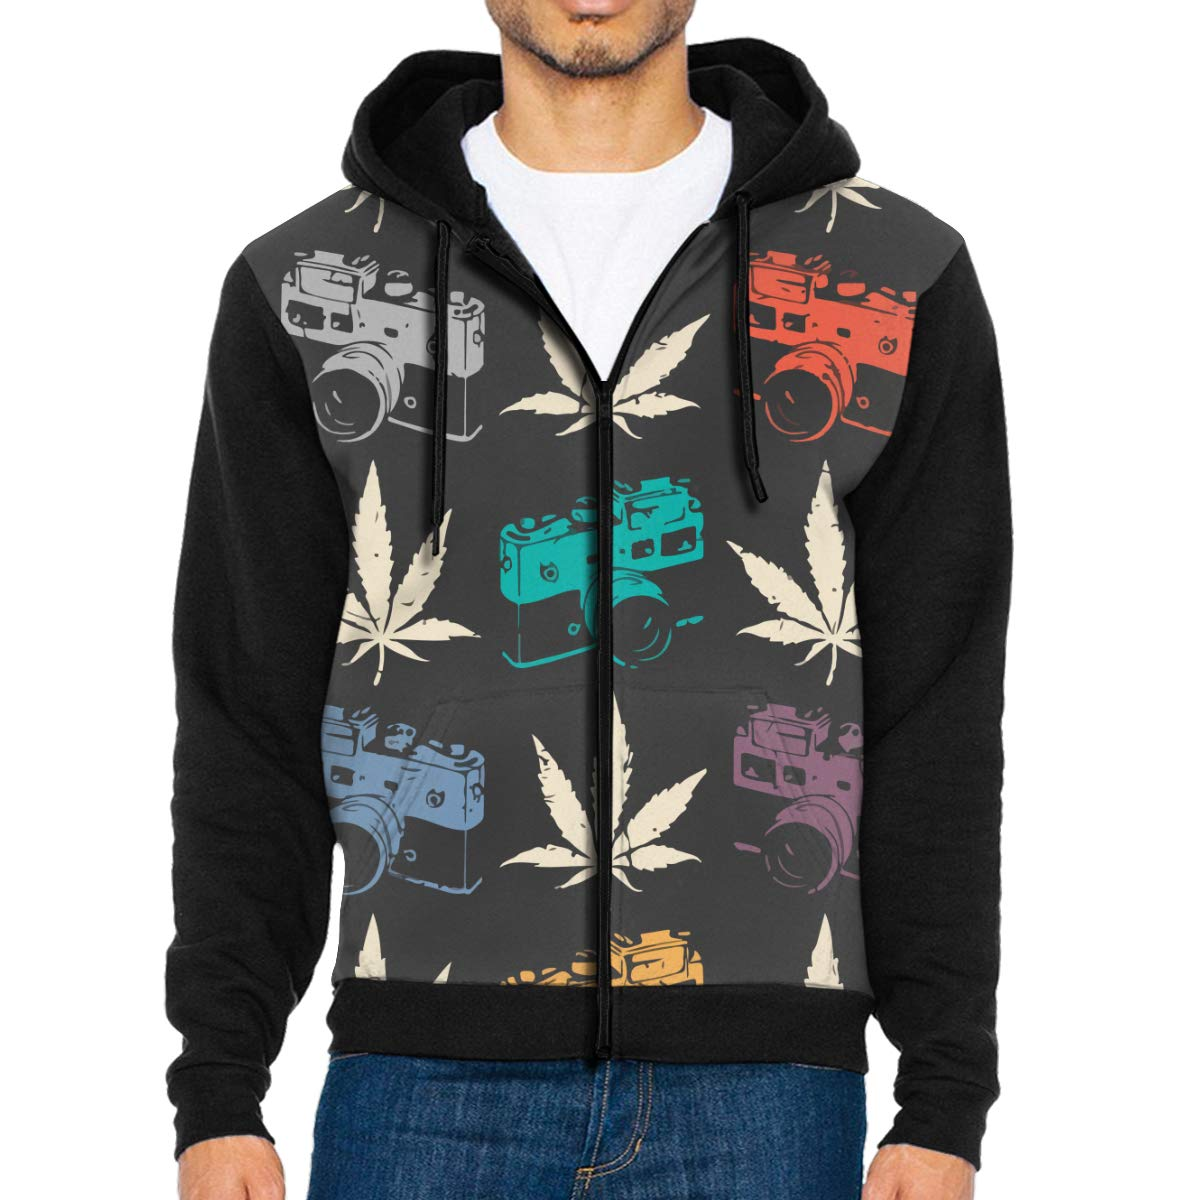 G-Fulling Camera Cannabis Leaf 3D Print Fashion Men's Hooded Sweatshirts Drawstring Pullover Hoodies Pockets